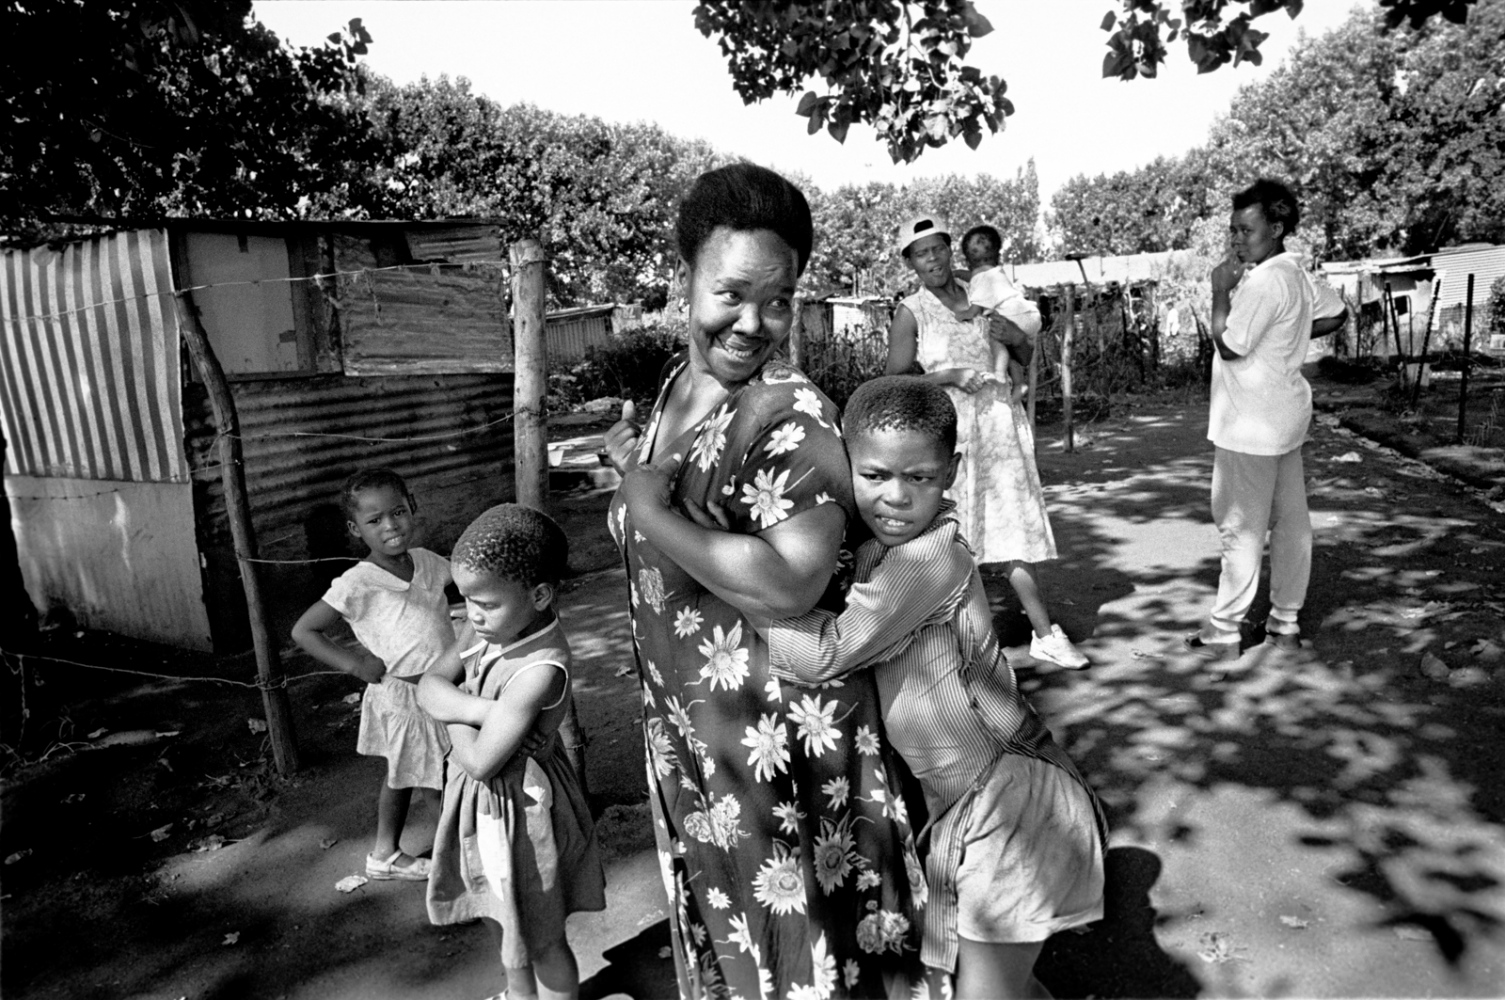 Masindi with her neighbor, who advises her to avoid men, and stay home to help her mother and the other women in the village. 1998